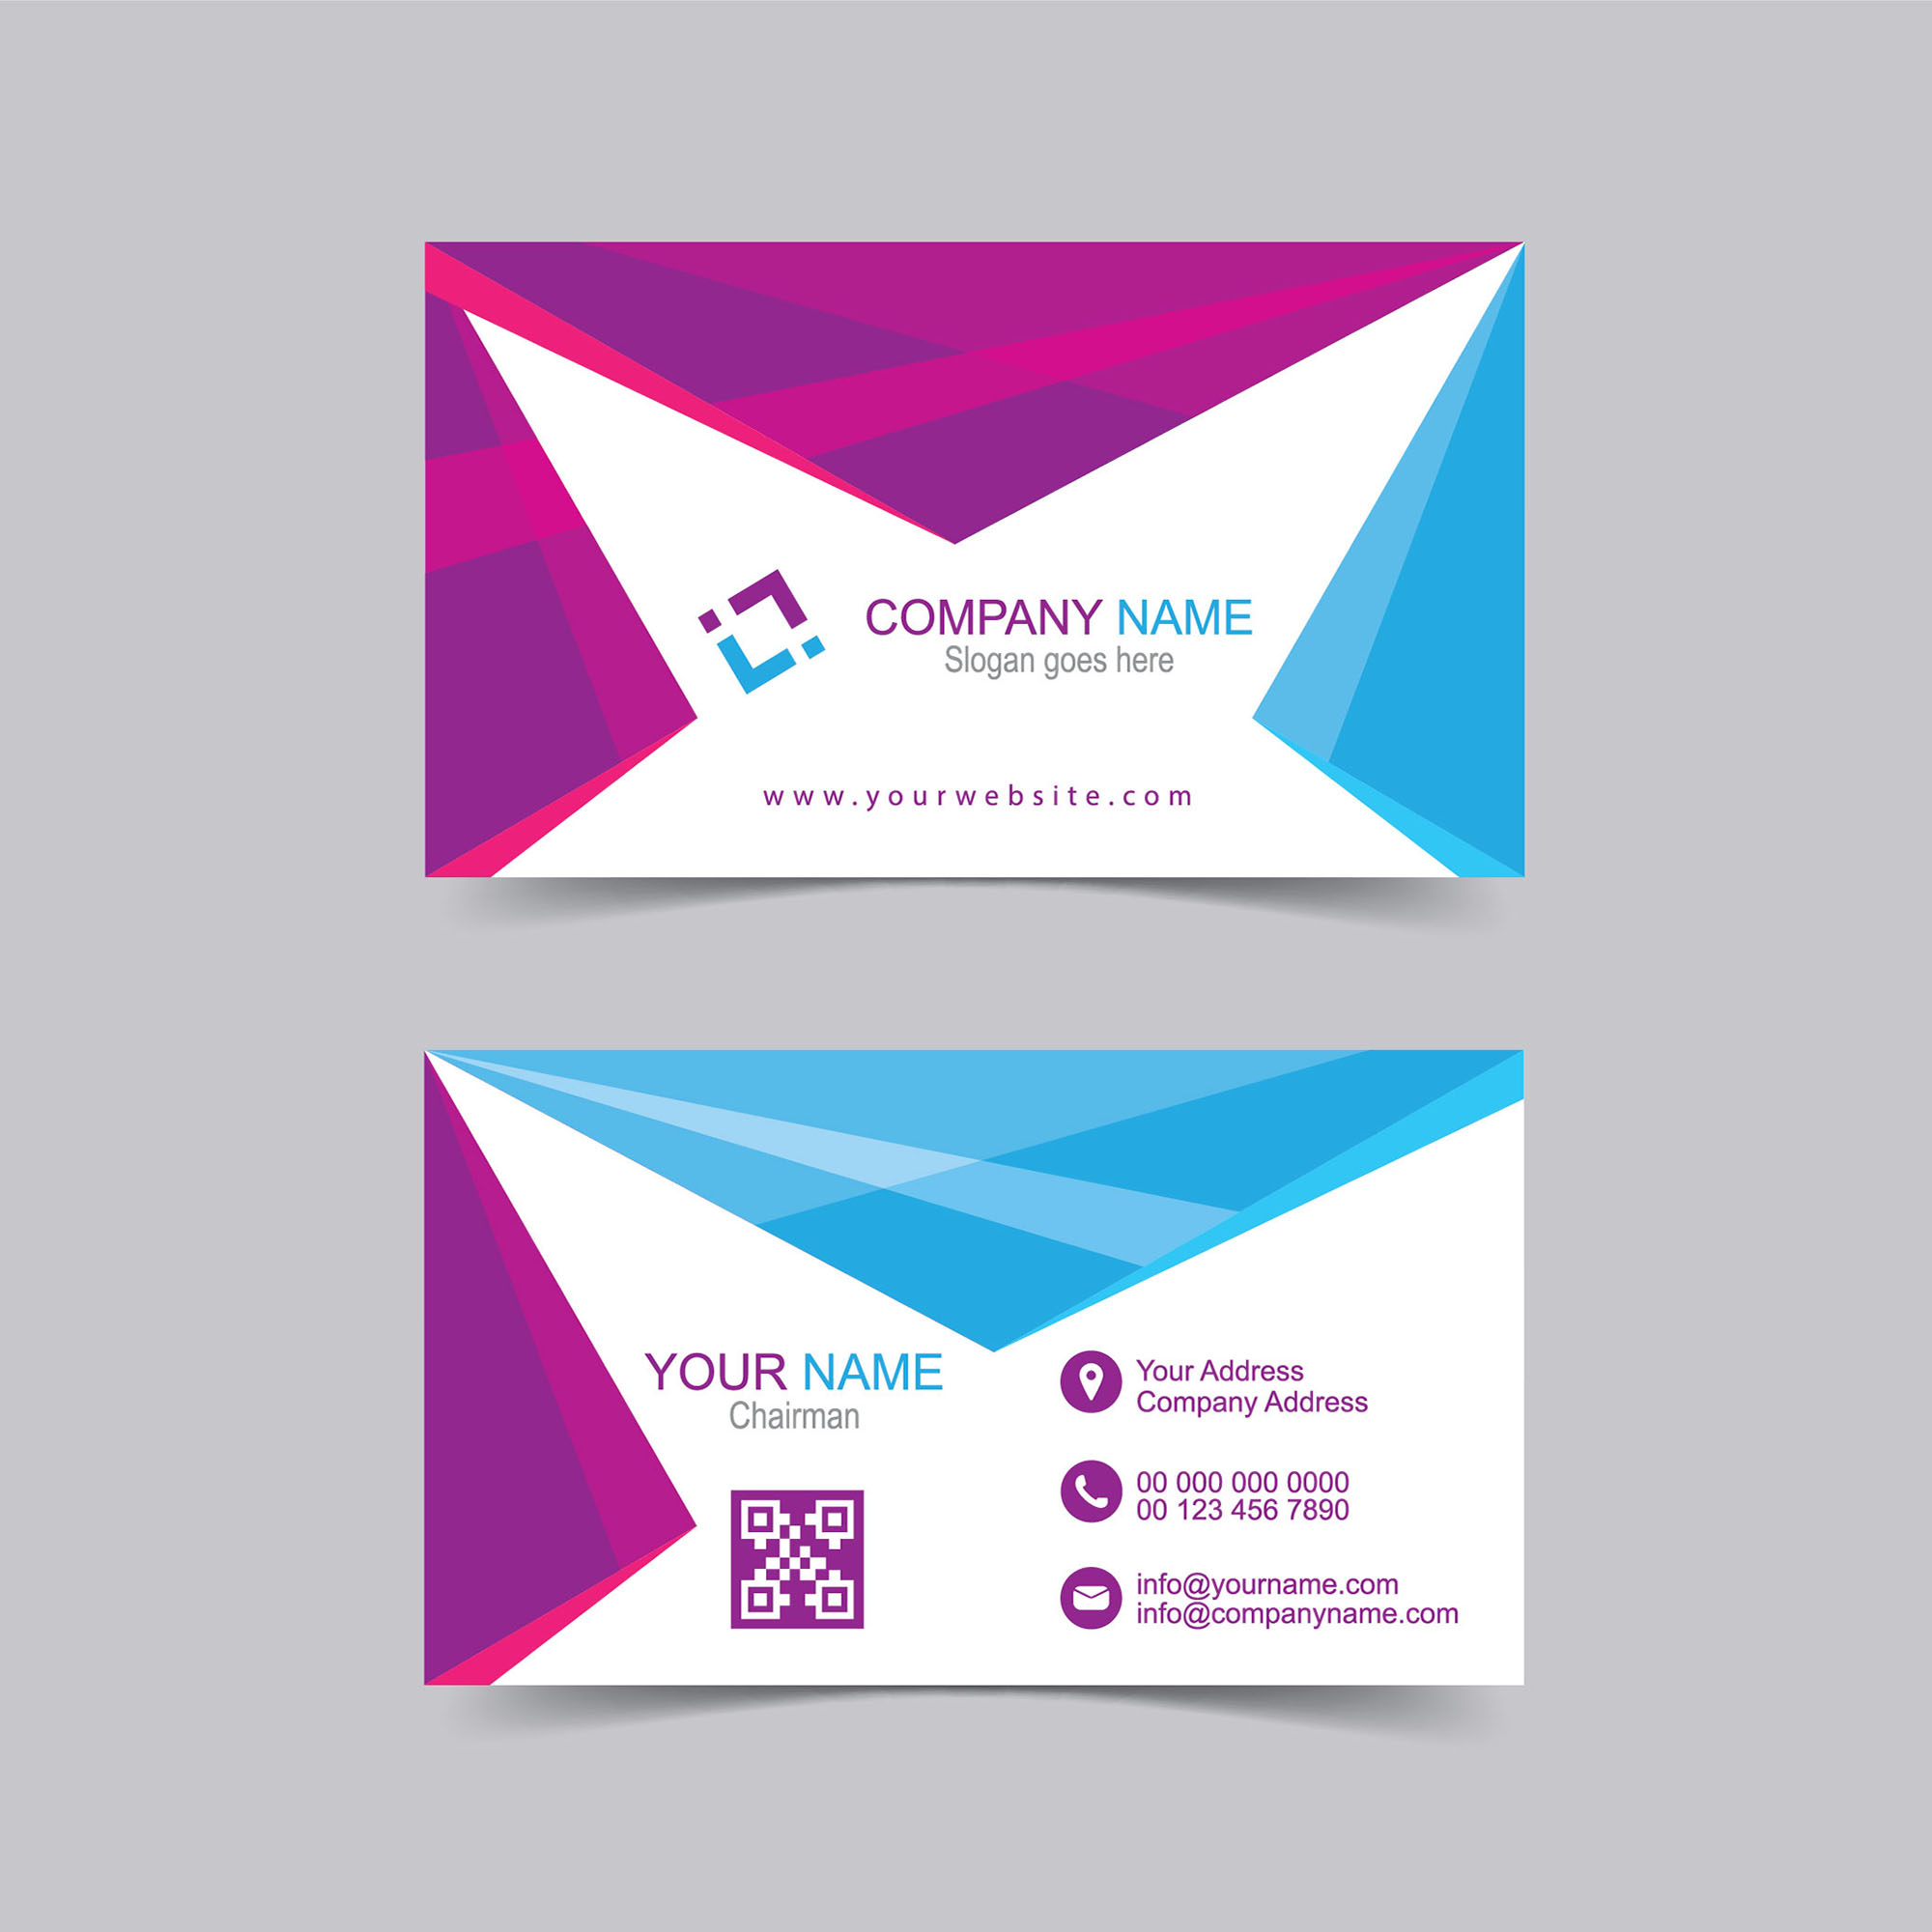 Visiting card vector template free download wisxi business card business cards business card design business card template design templates accmission Image collections